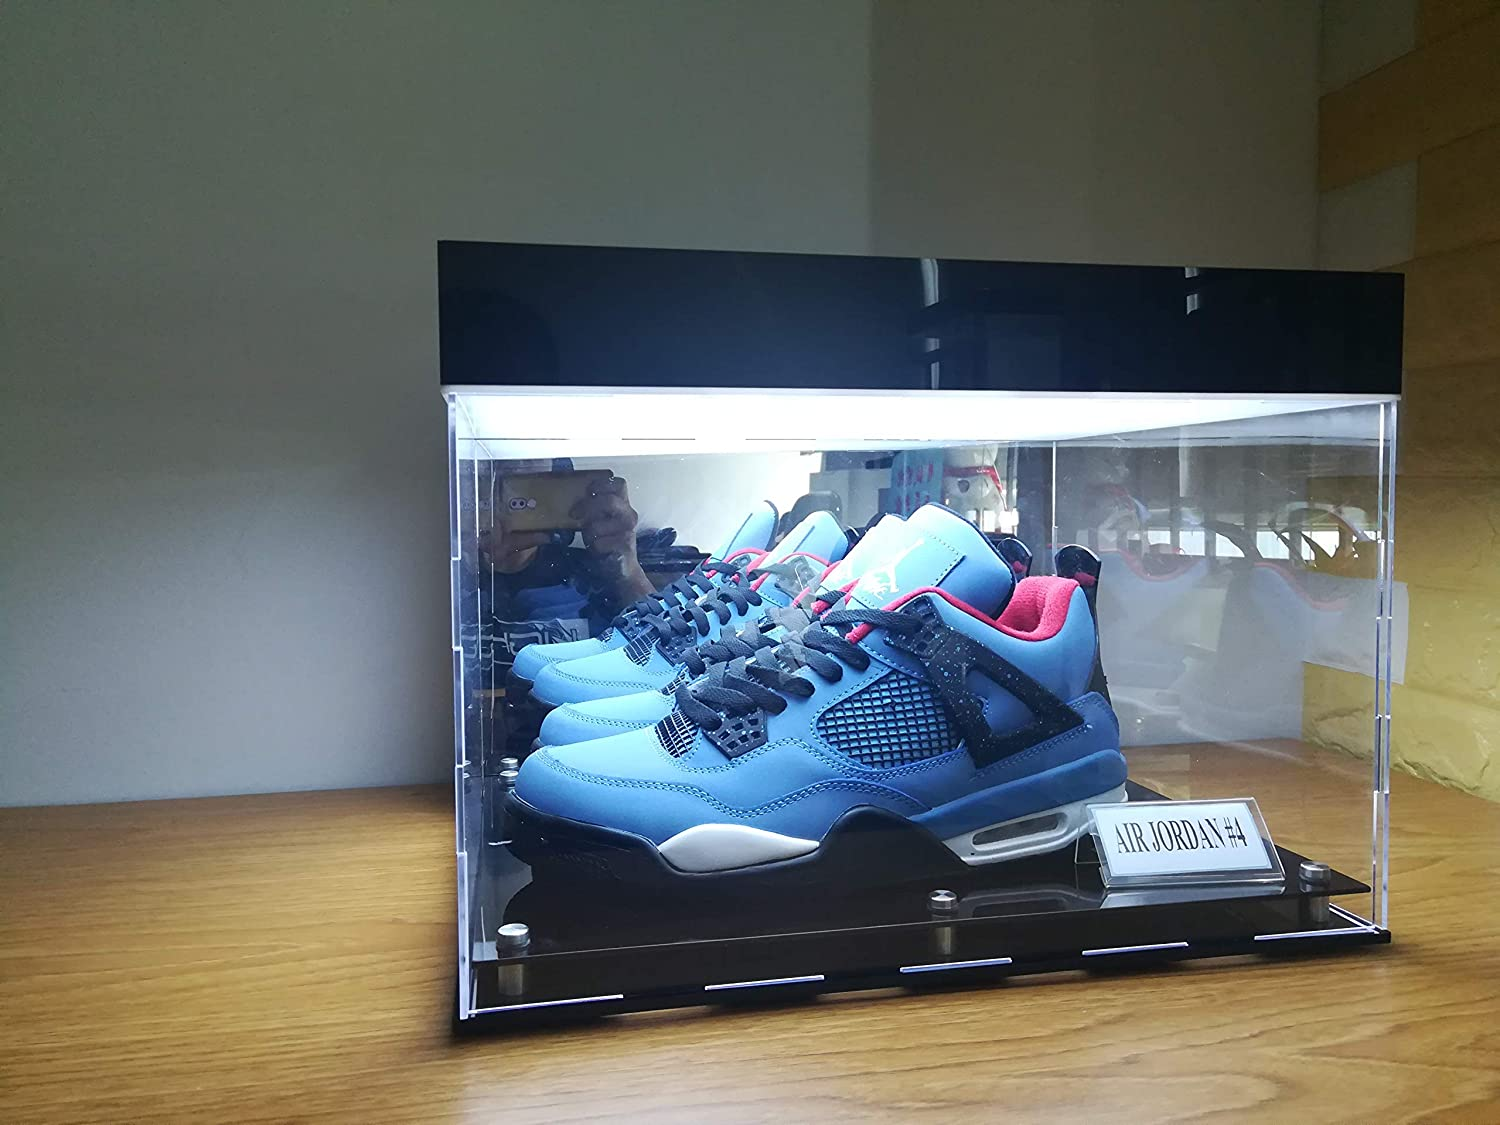 CPS Basketball Shoes Clear Acrylic Panels Display Cases for Sports Memorabilia Products Storage Showcase